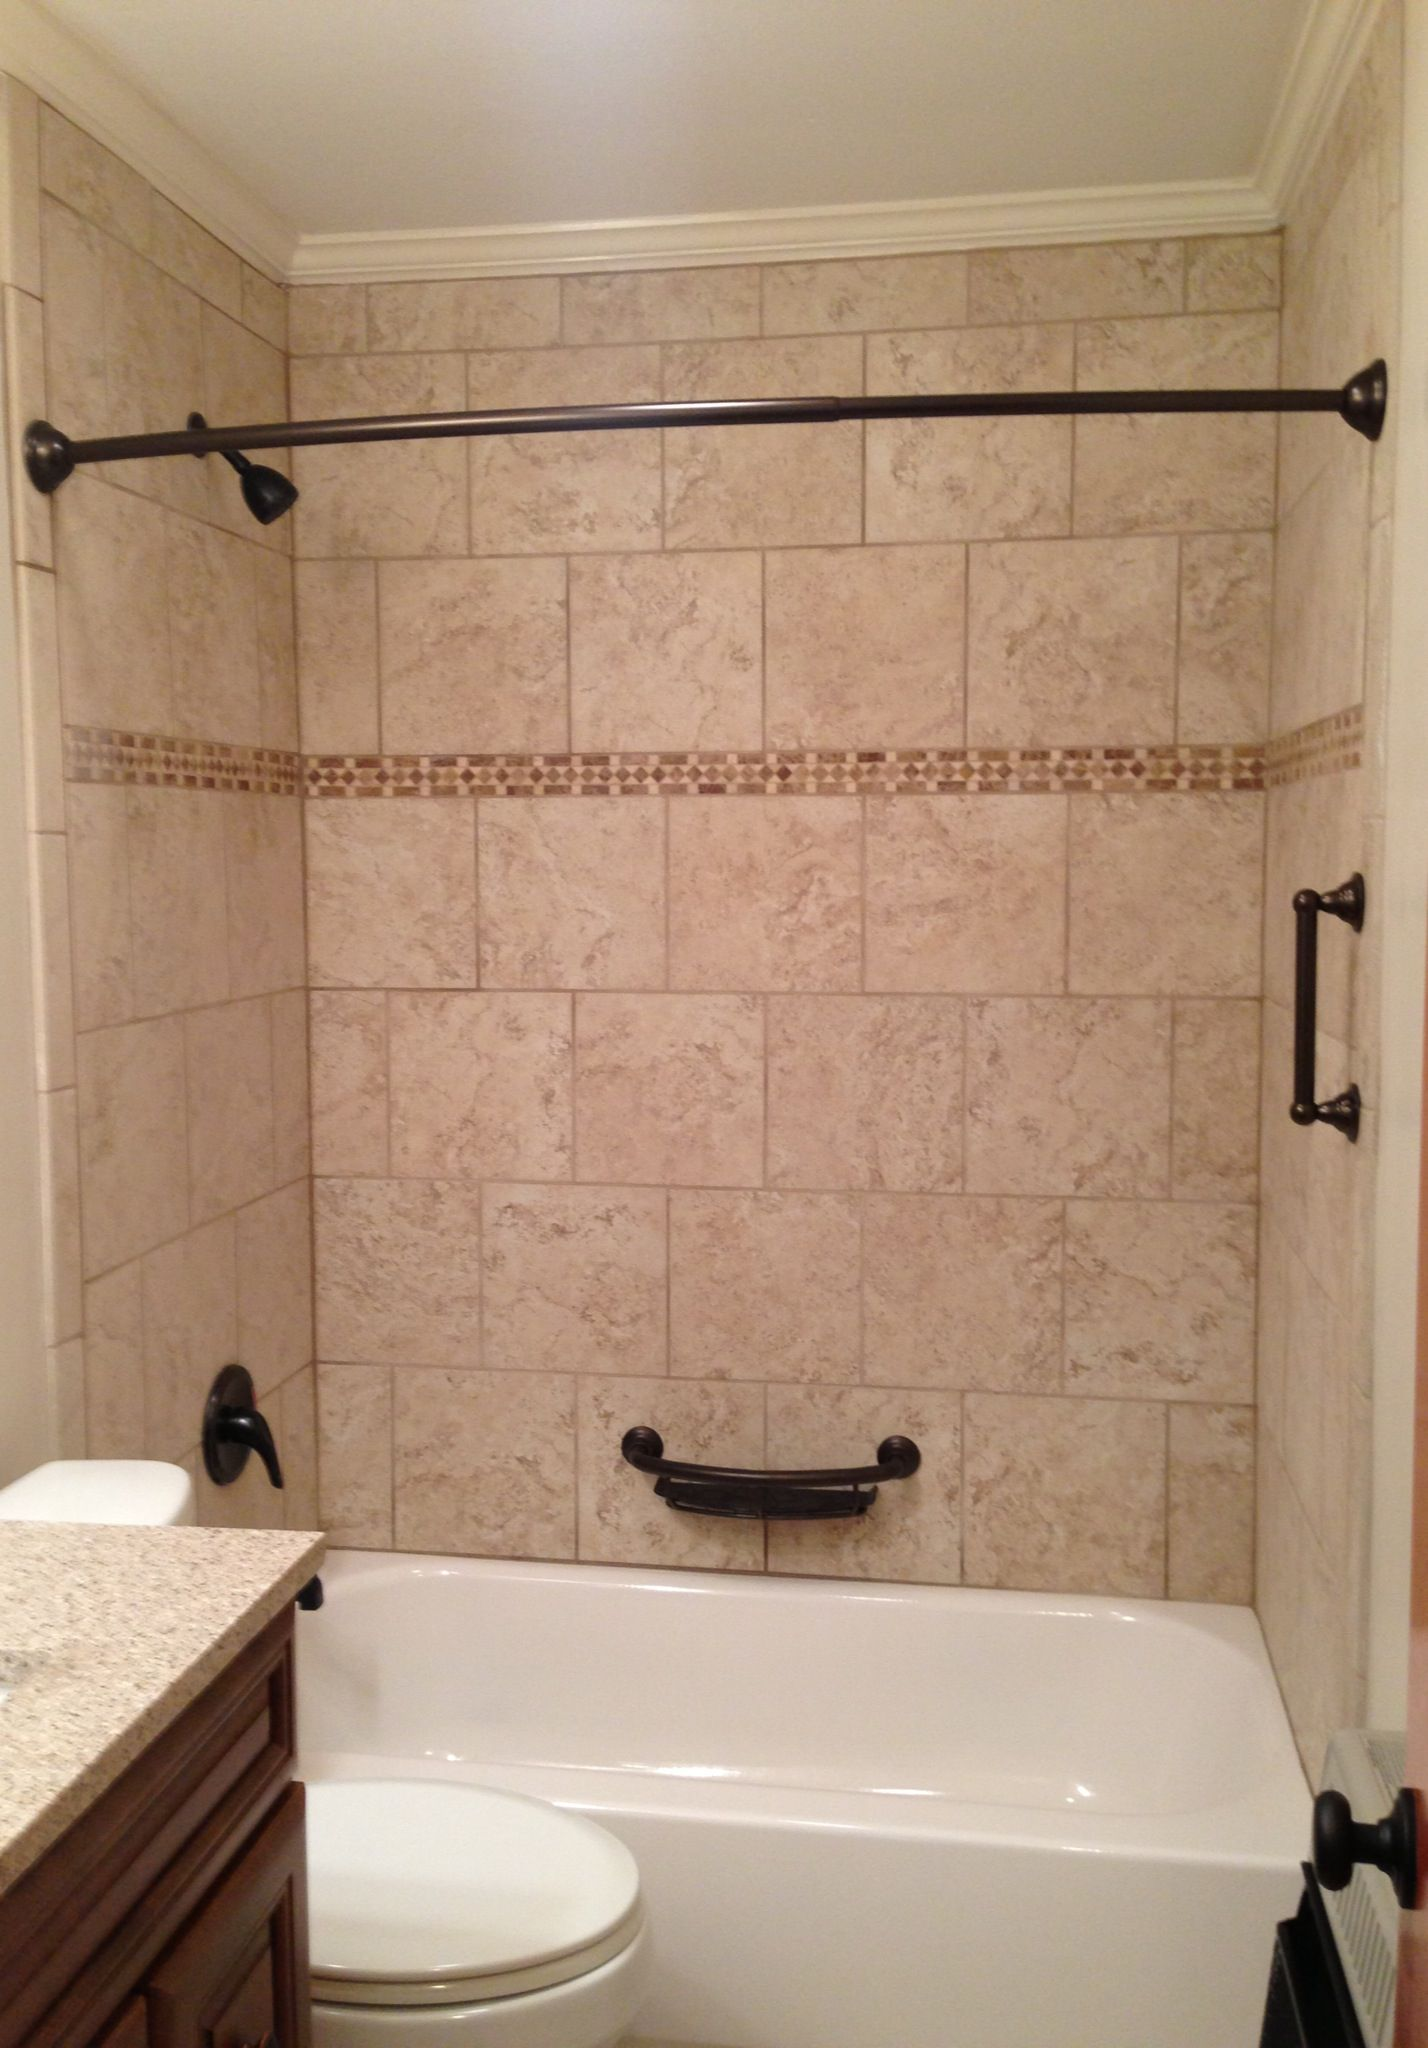 Superbe Tile Tub Surround. Beige Tile Bathtub Surround With Oil Rubbed Bronze  Fixtures.